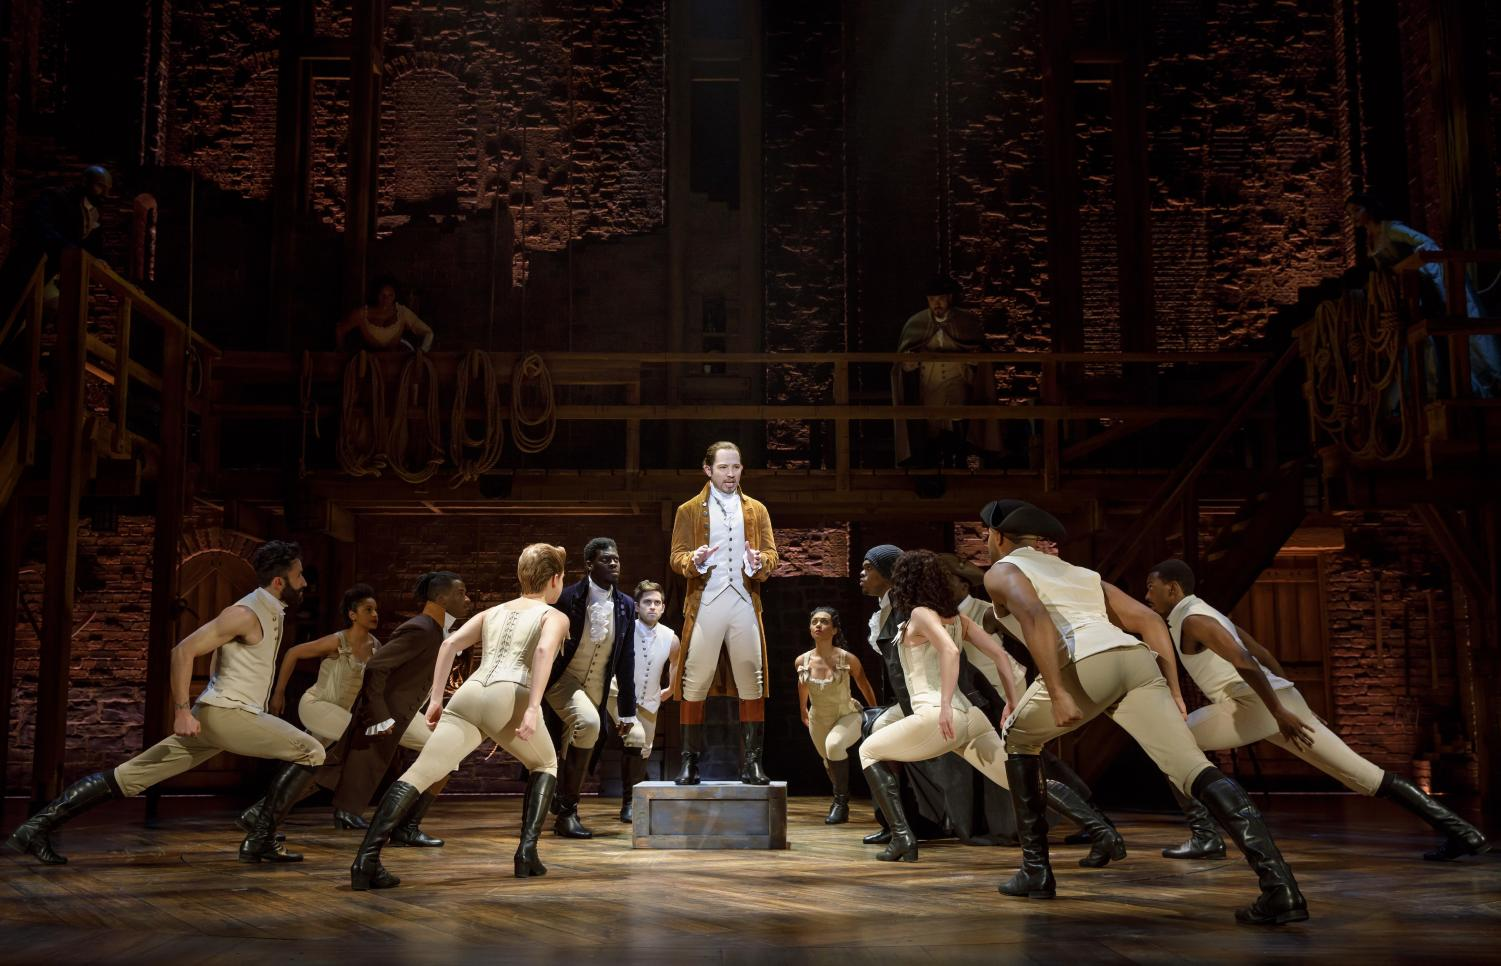 The company of Hamilton and Joseph Morales performing on stage. The show is currently being performed at Bass Music Hall in Austin.